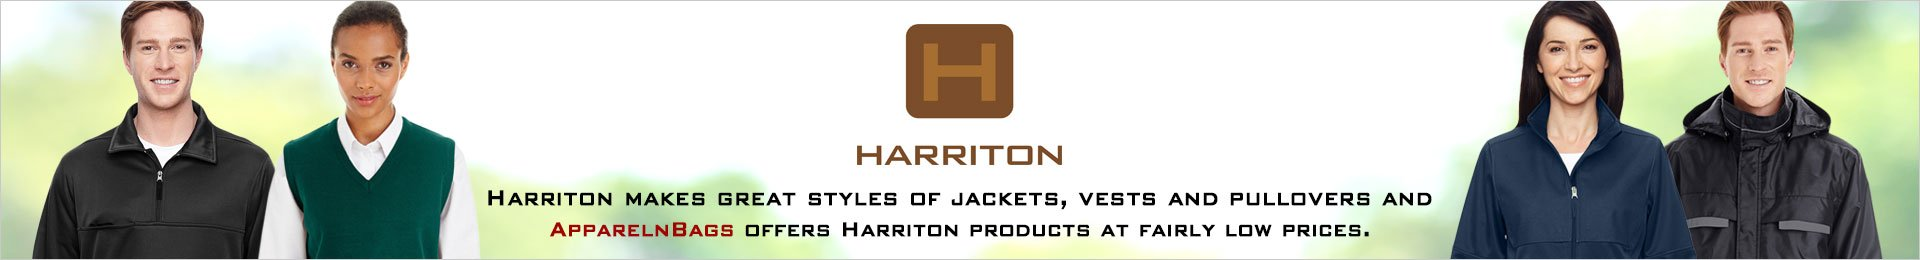 Harriton Jacket, Vest And Pullovers